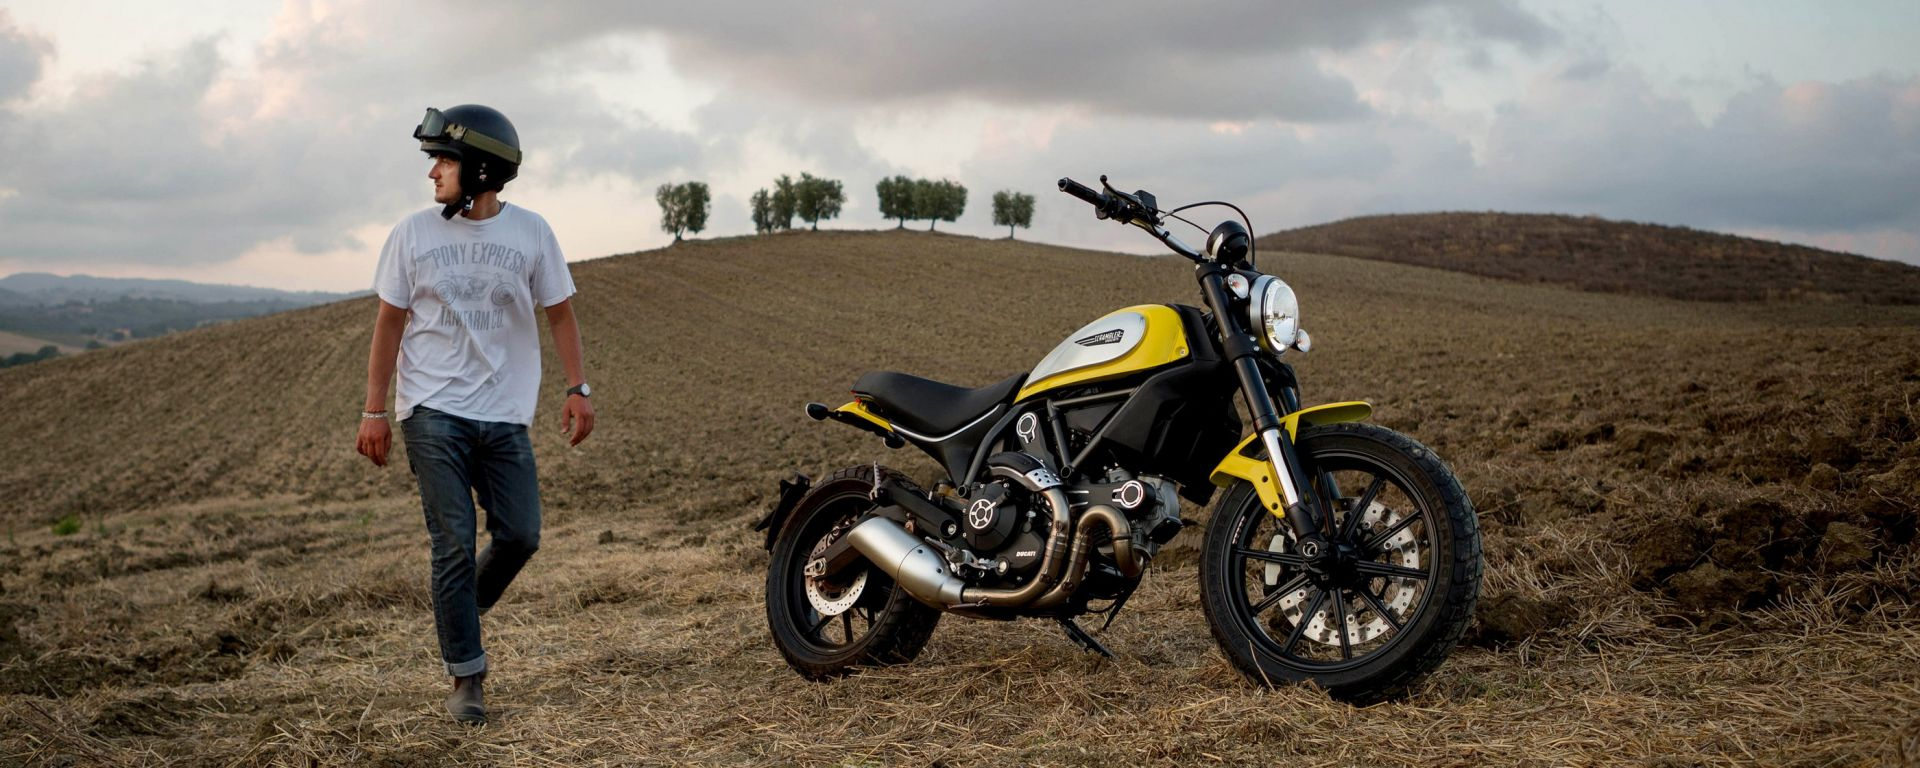 Ducati Scrambler in video